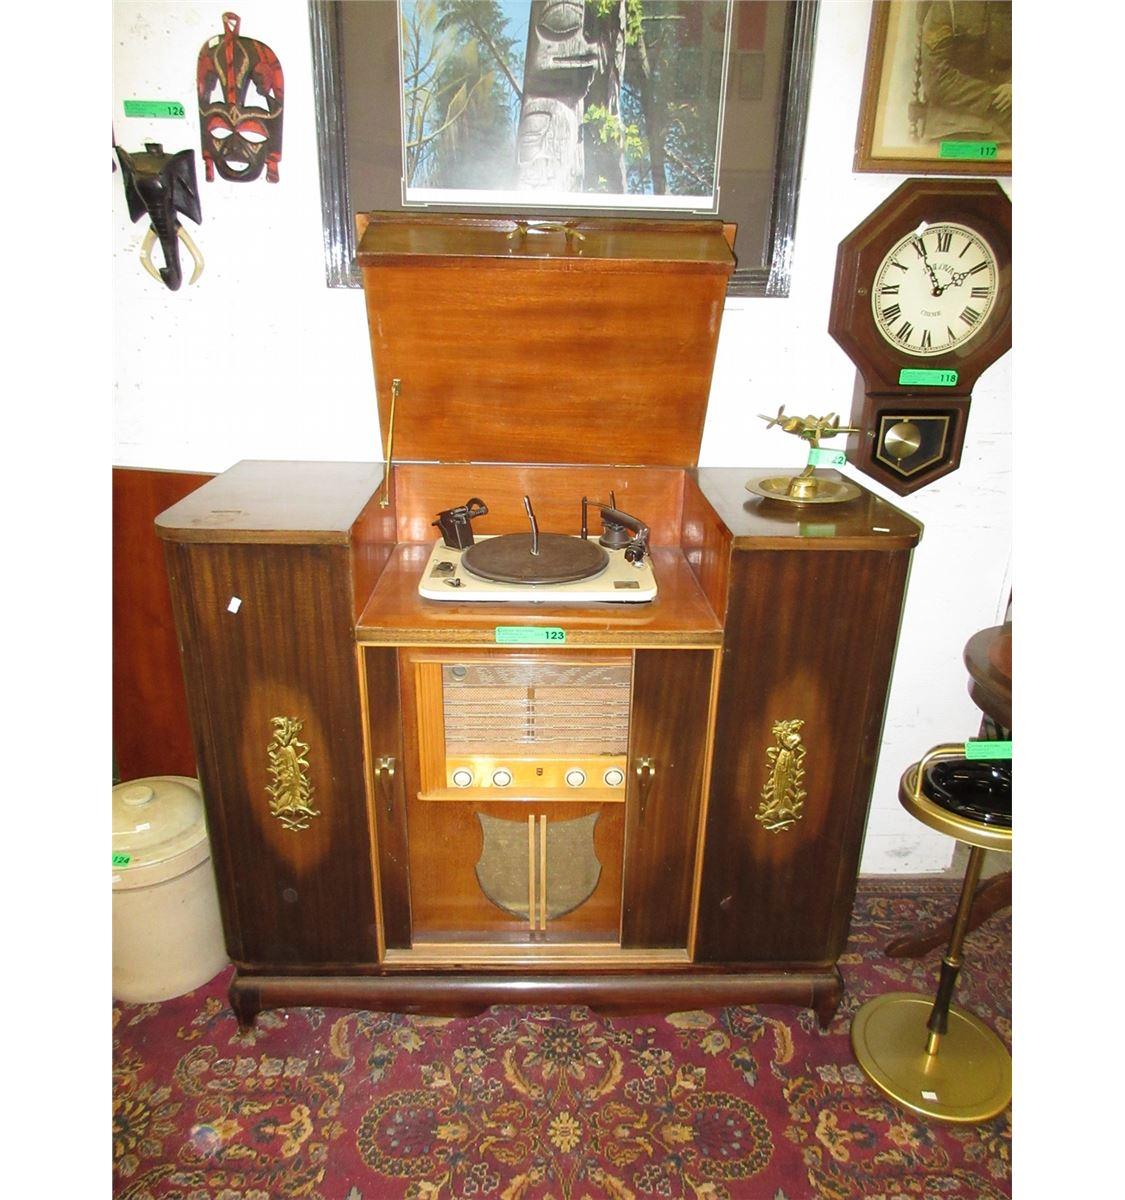 Kitchen Cabinets Port Coquitlam: Stereo Cabinet With Turntable & Radio